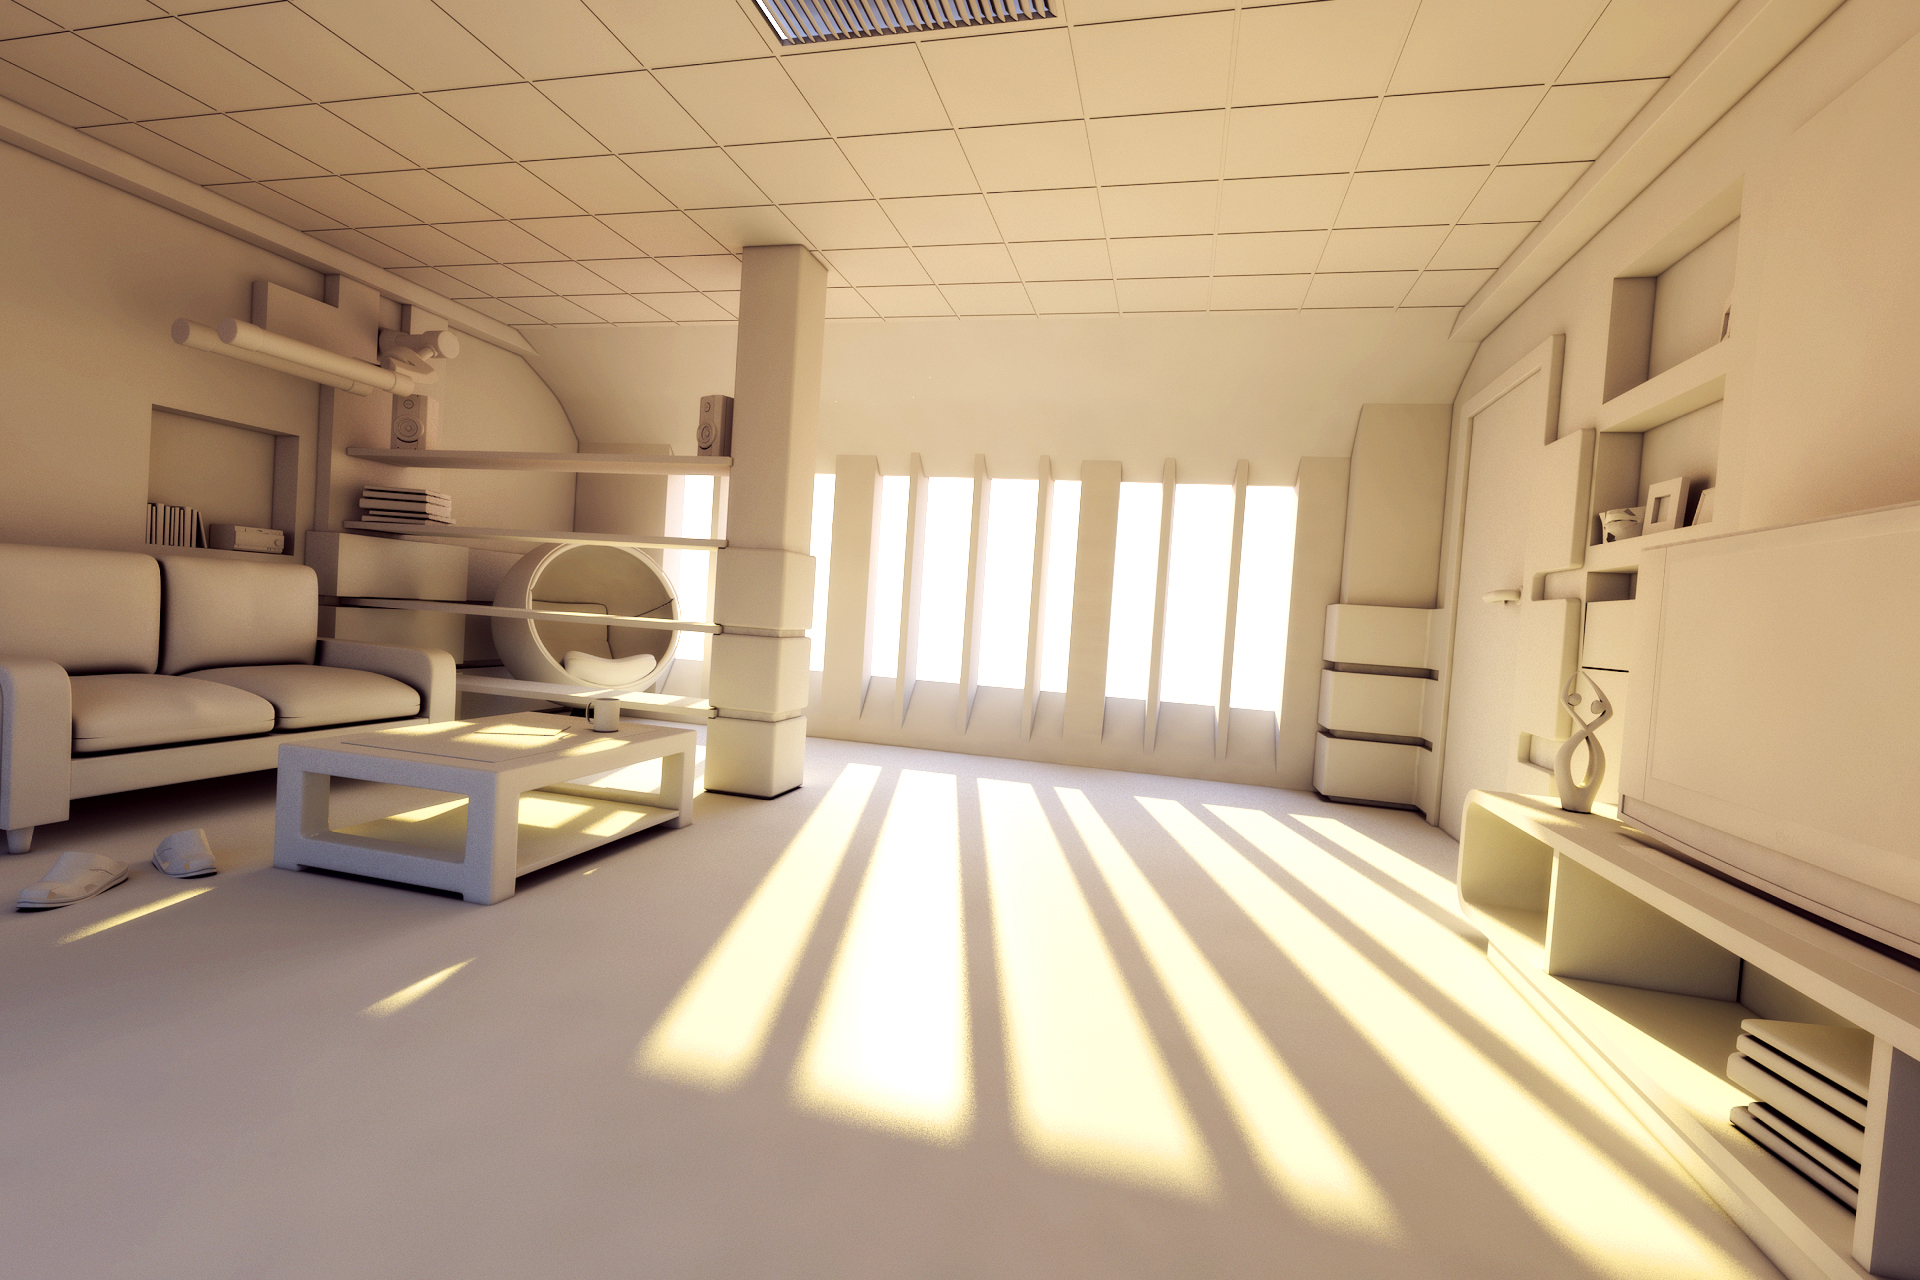 Interior_clean_matt render07_warmer